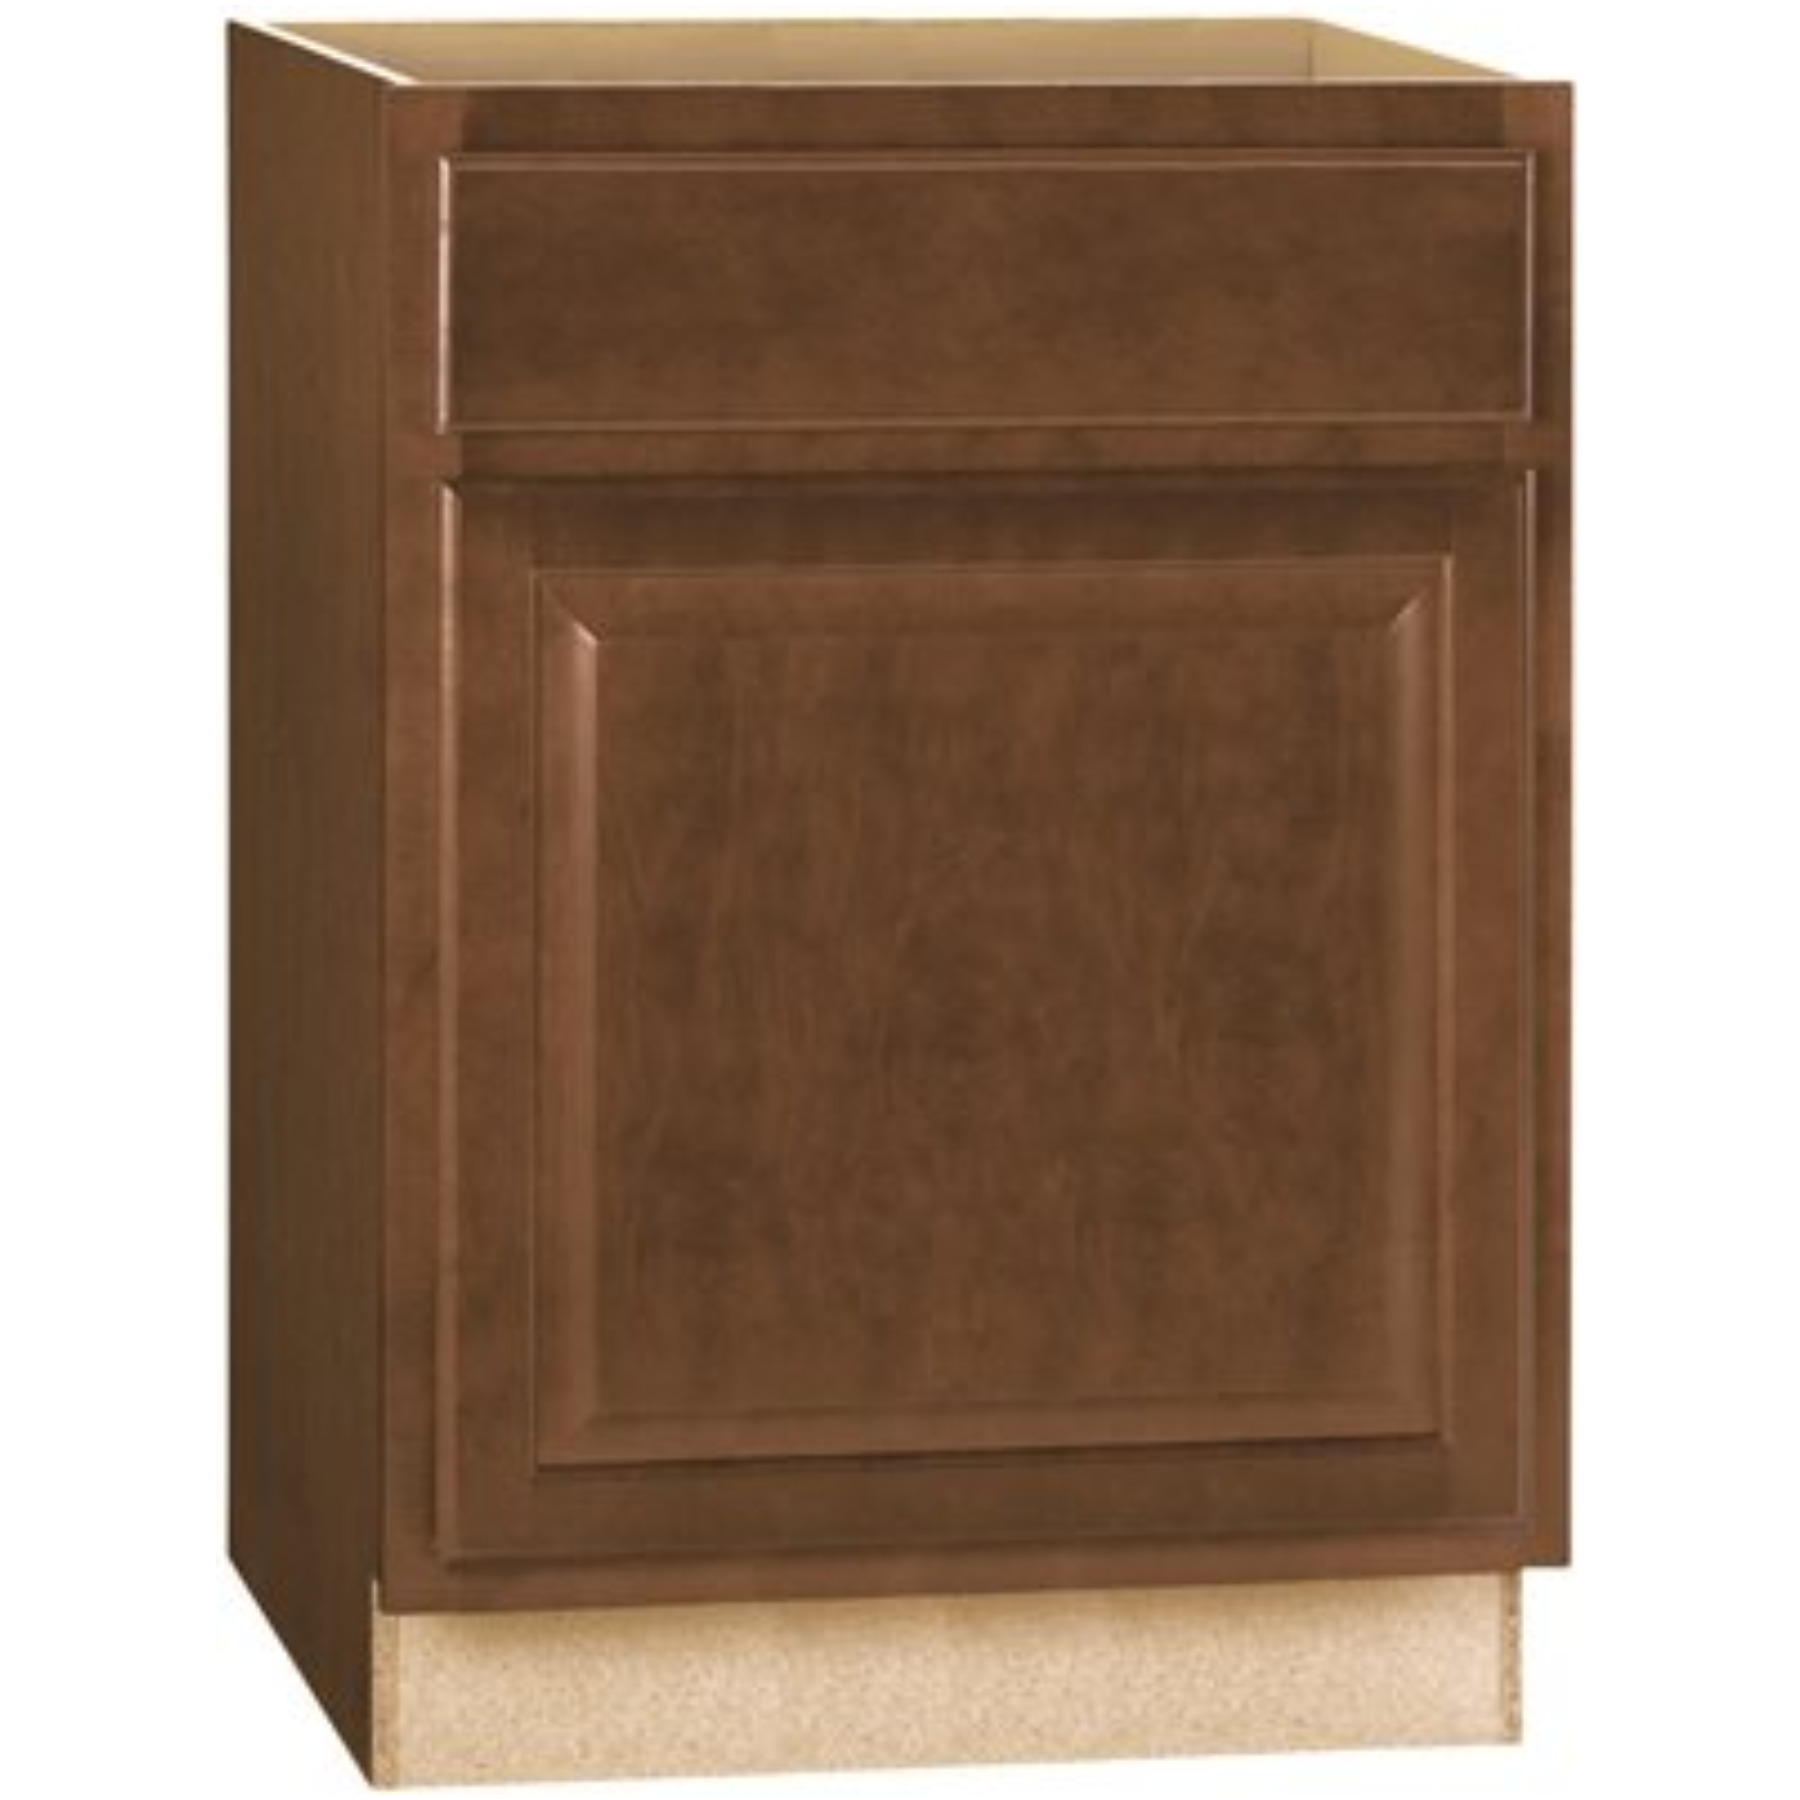 RSI HOME PRODUCTS HAMILTON BASE CABINET, FULLY ASSEMBLED, RAISED PANEL, CAFE, 27X34-1/2X24 IN.